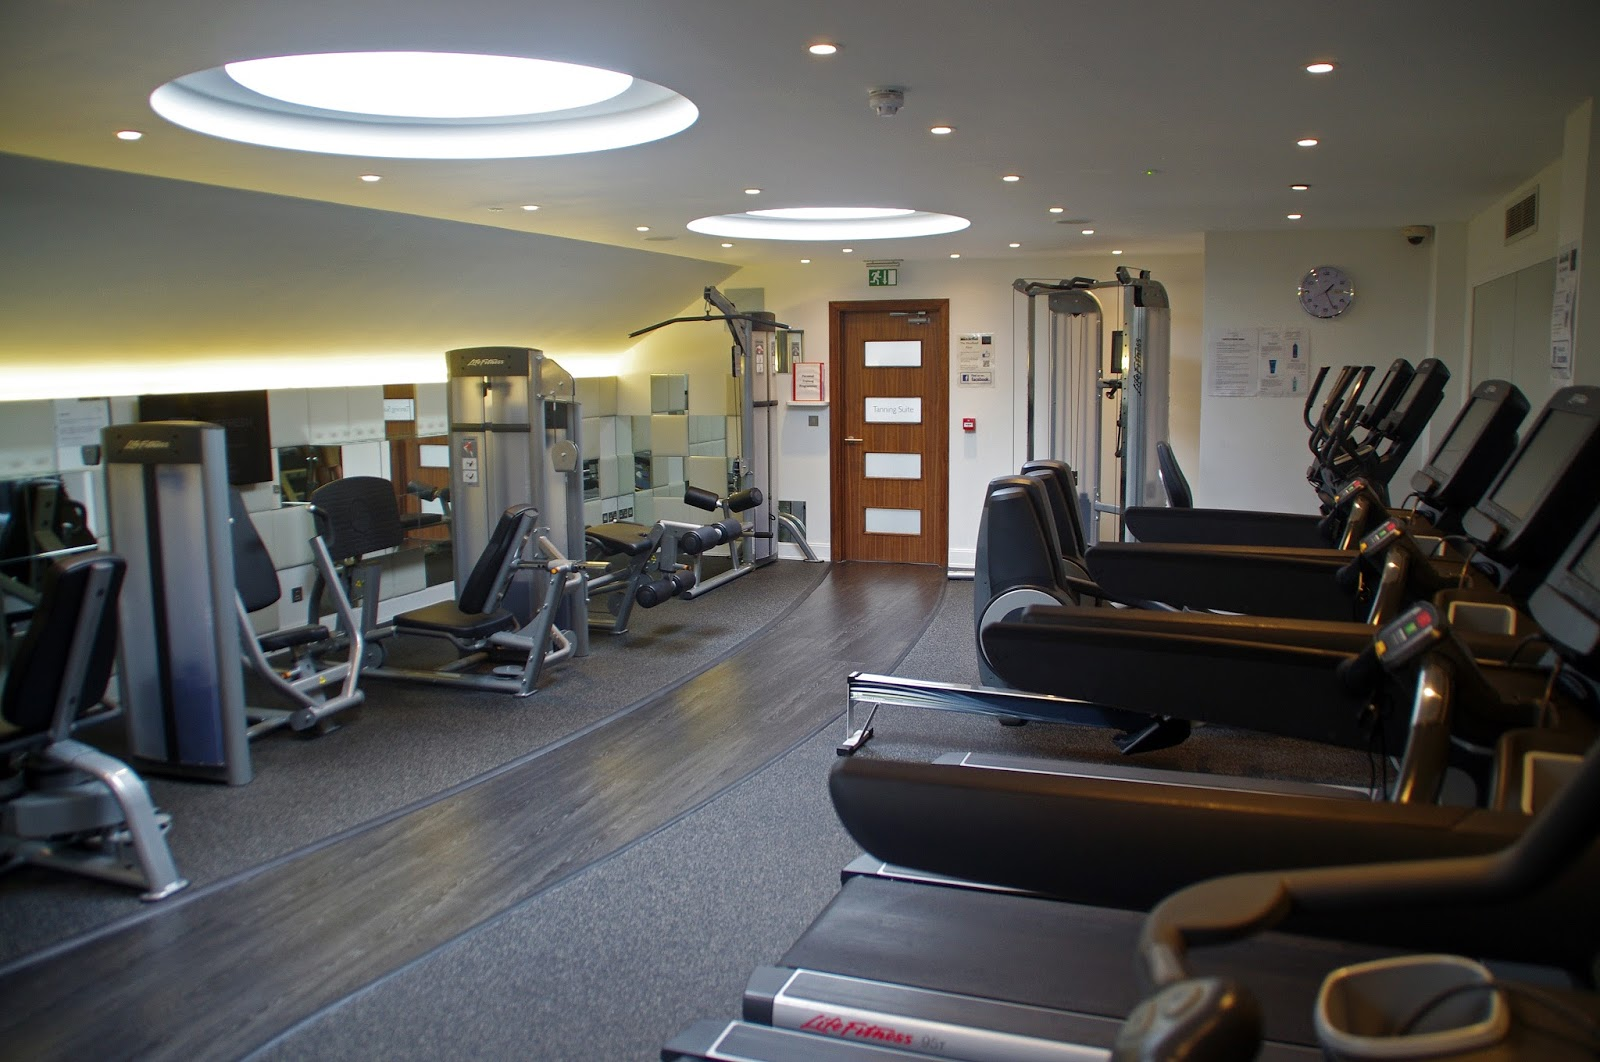 Headland Hotel Newquay Cornwall Gym